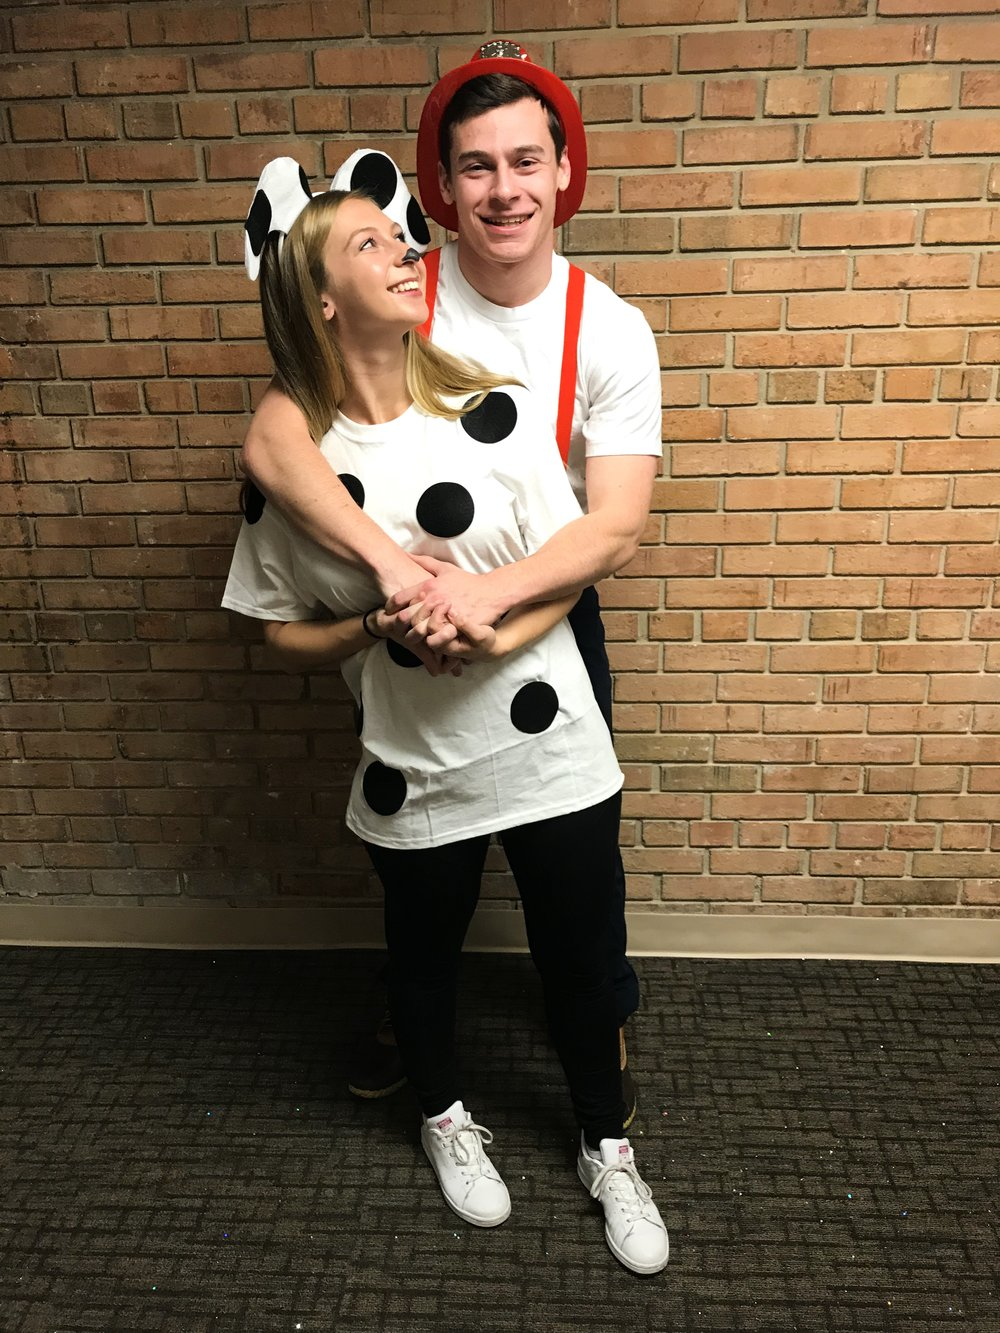 Dalmation and Firefighter Halloween Costume